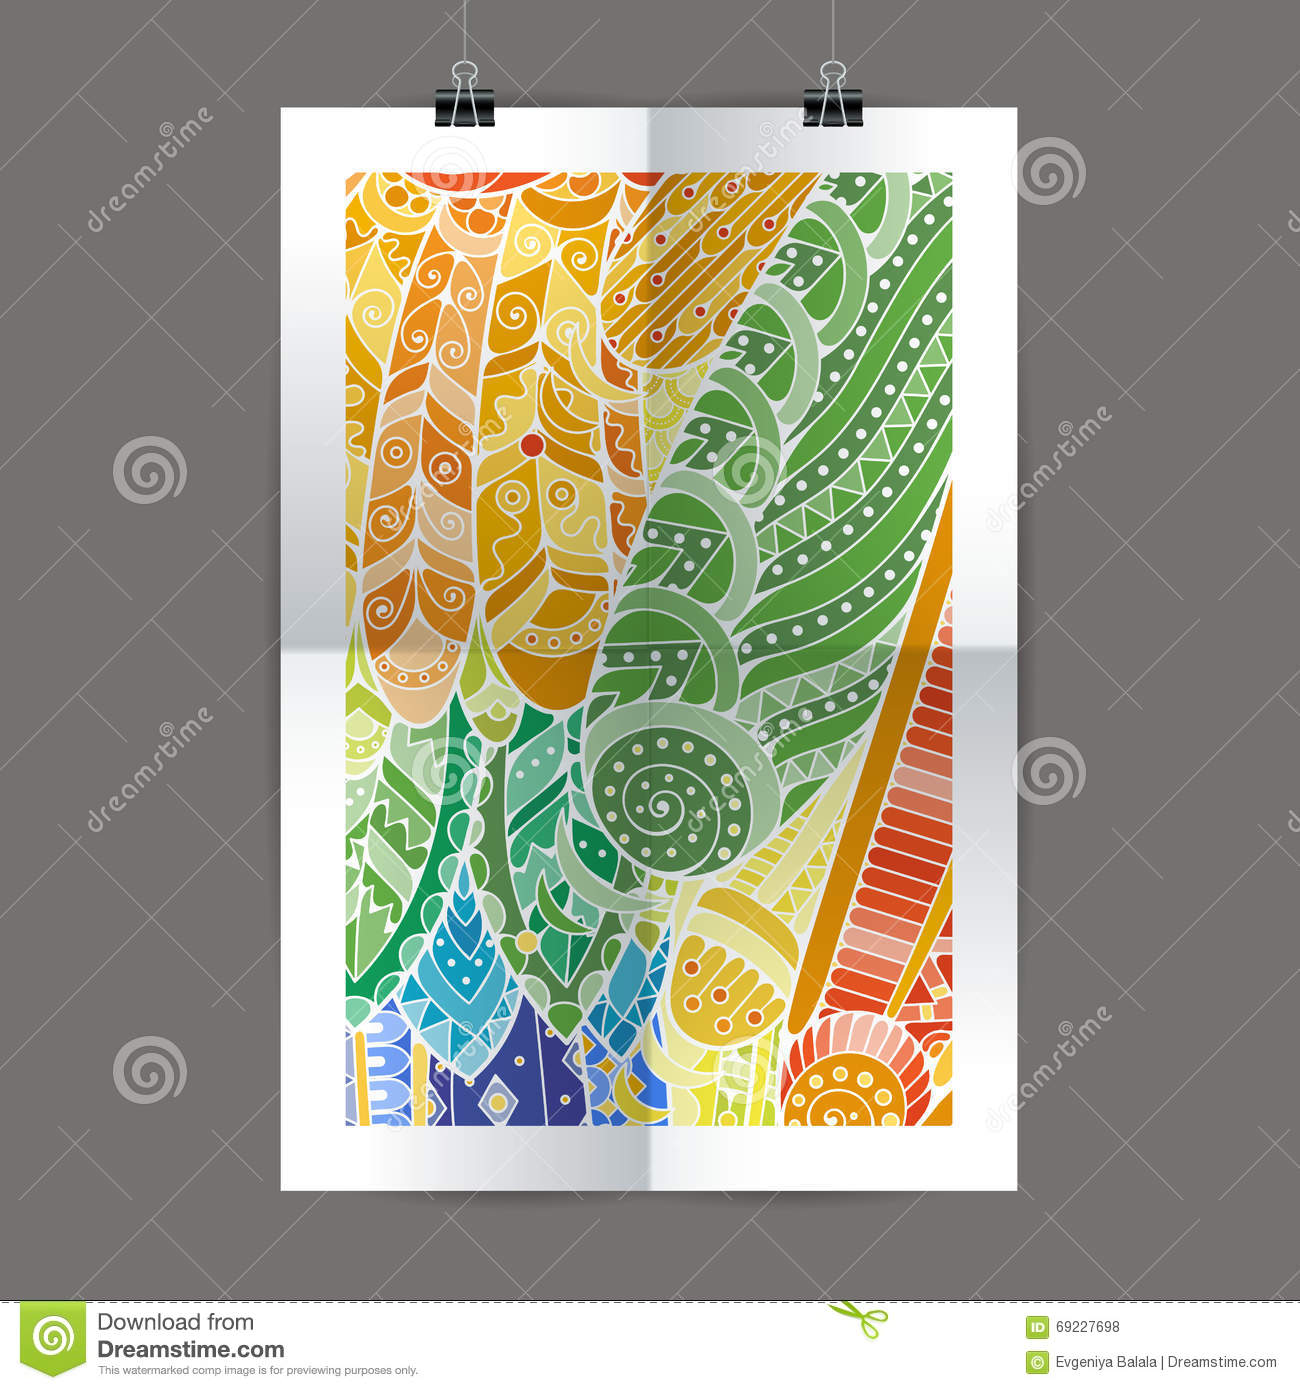 Zen poster design - Stylish Presentation Of Wall Poster Magazine Cover Design Paper Print Template Folder Zentangle